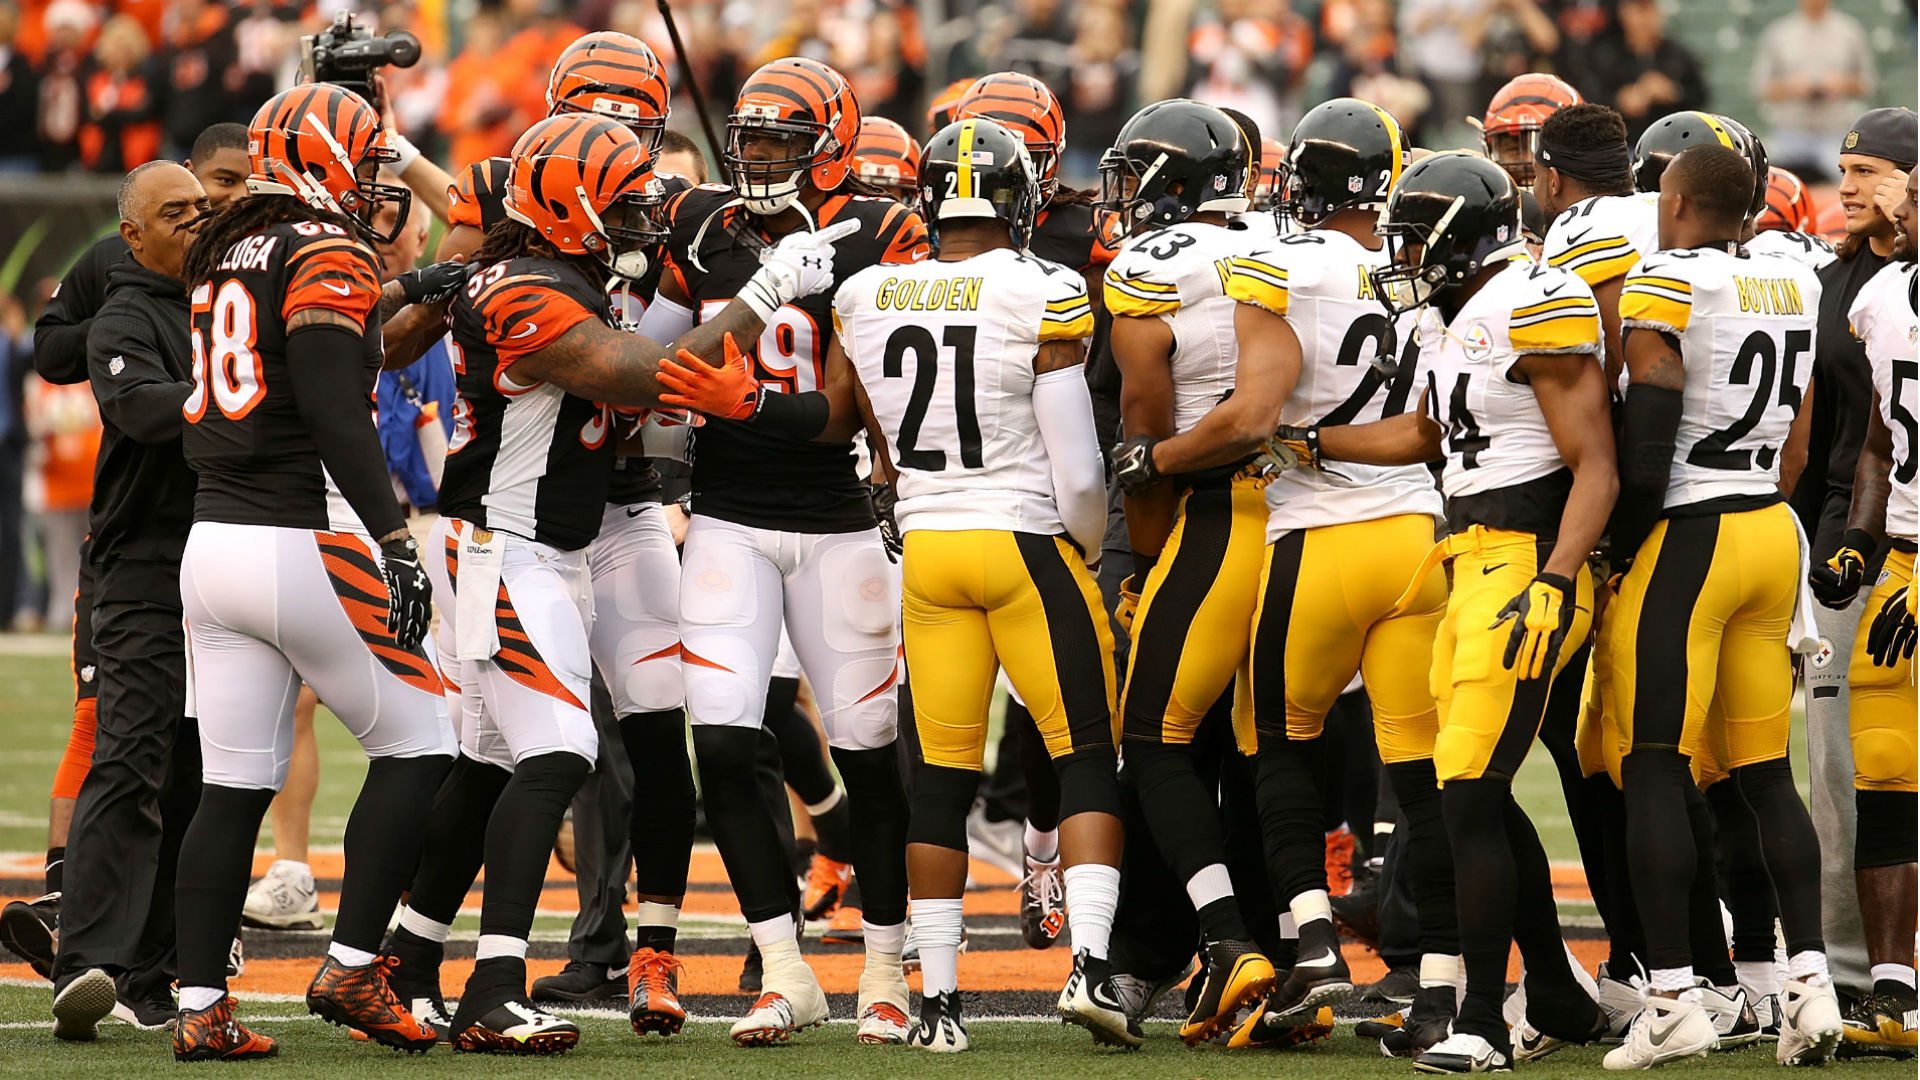 bengals-steelers-scuffle-121415-usnews-getty-ftr